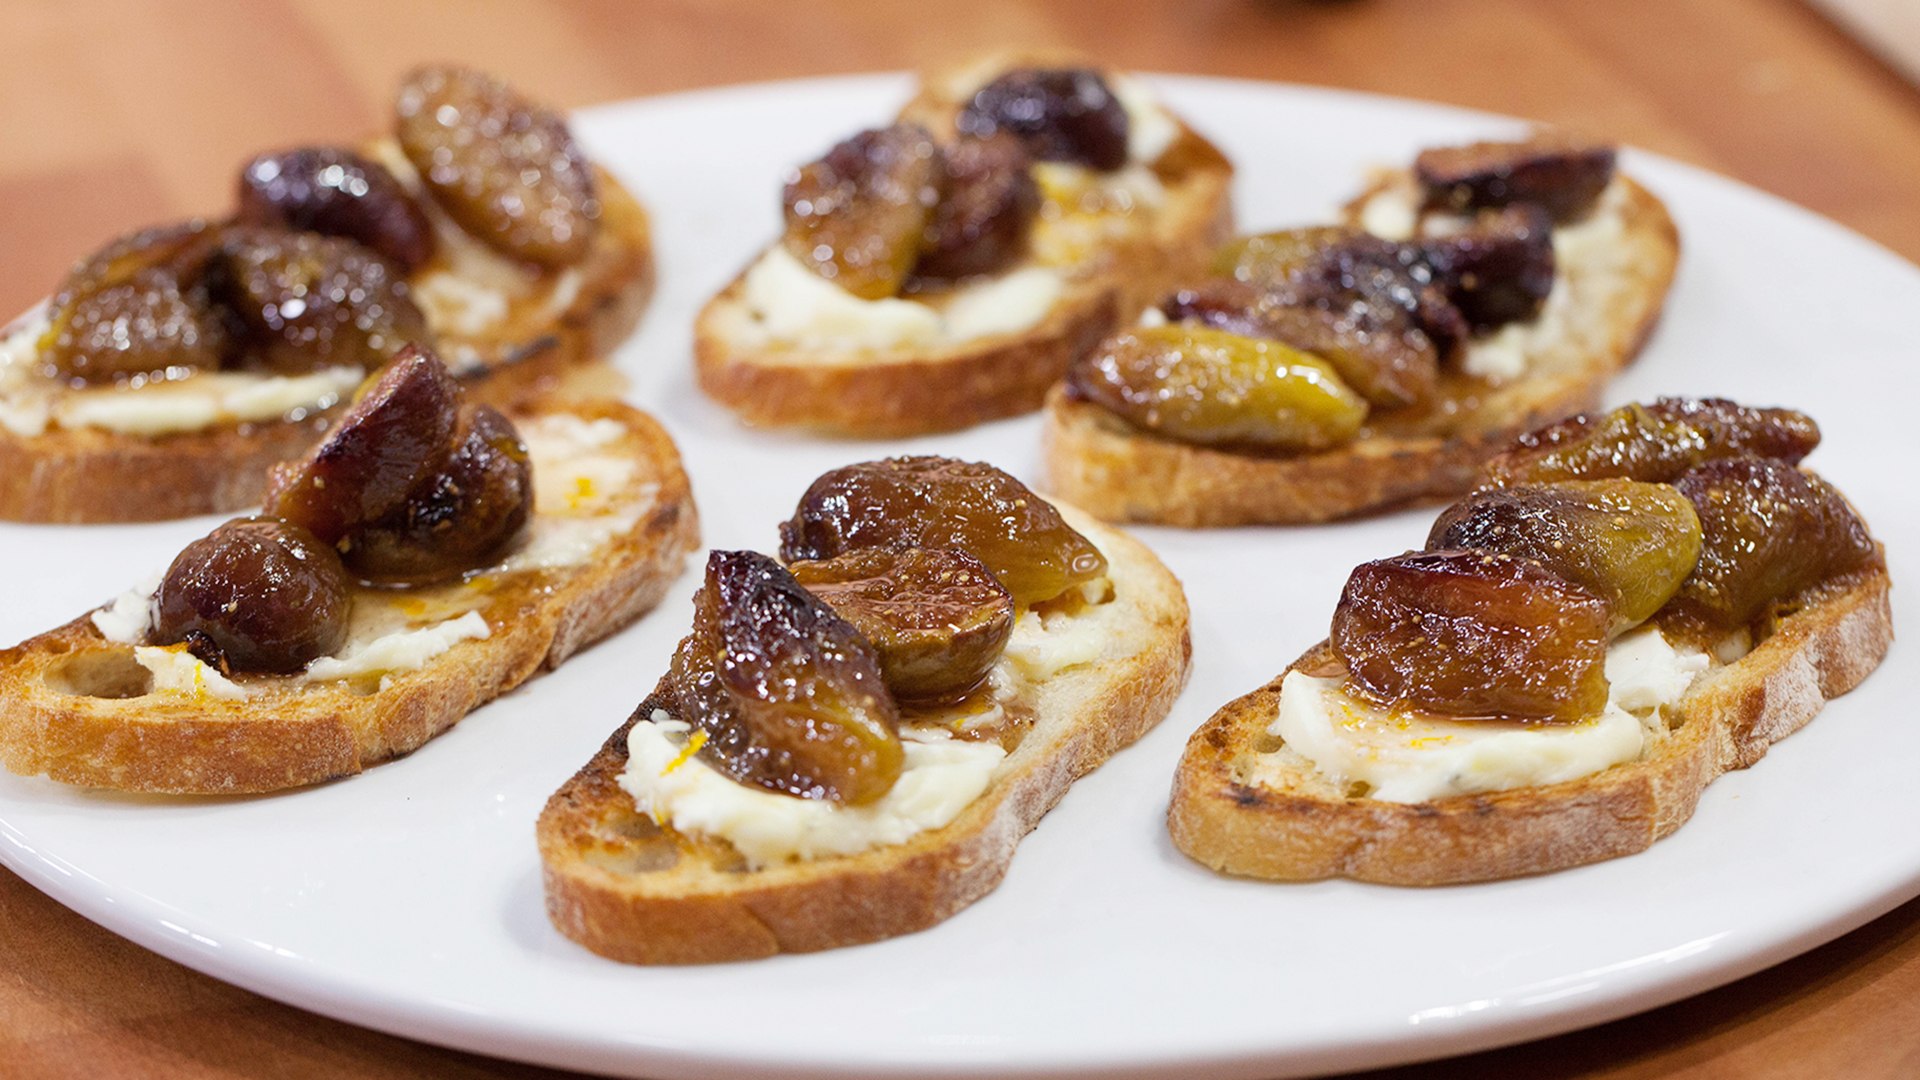 ina garten's easy holiday appetizer recipes - today